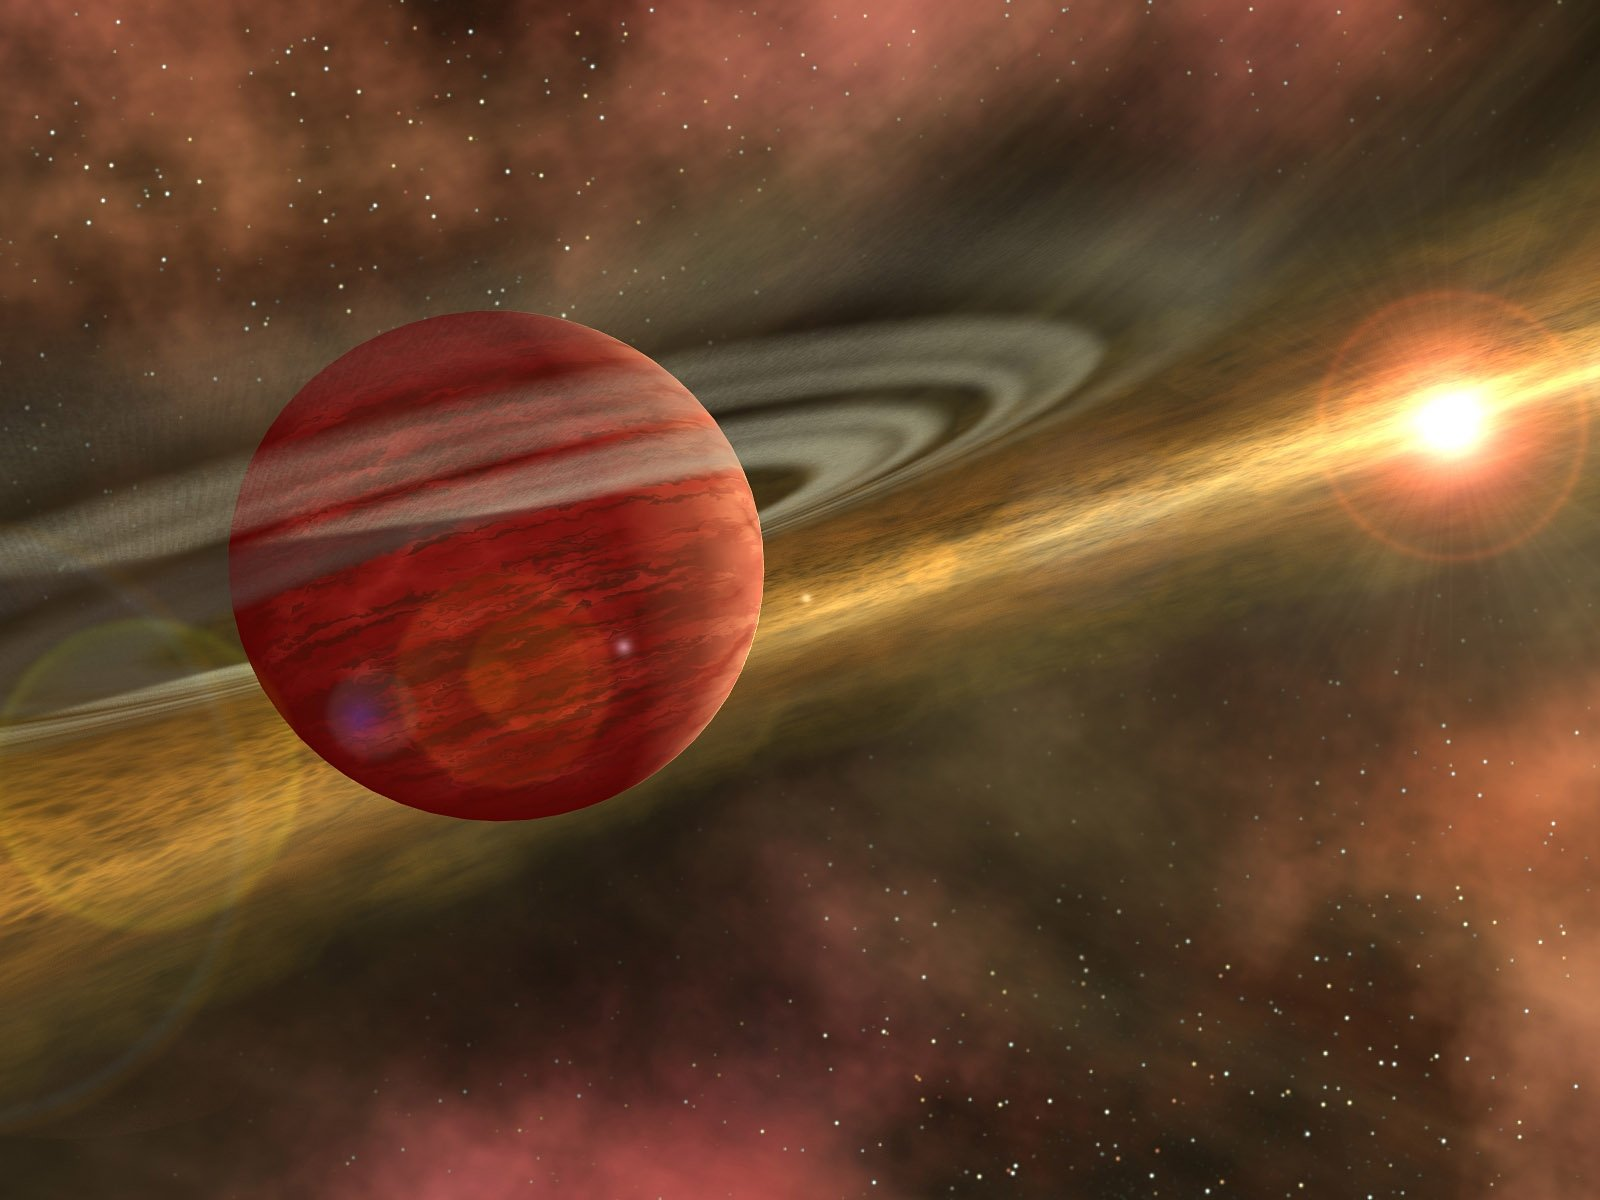 New 'Hot Jupiter' Exoplanet Detected By K2 Mission